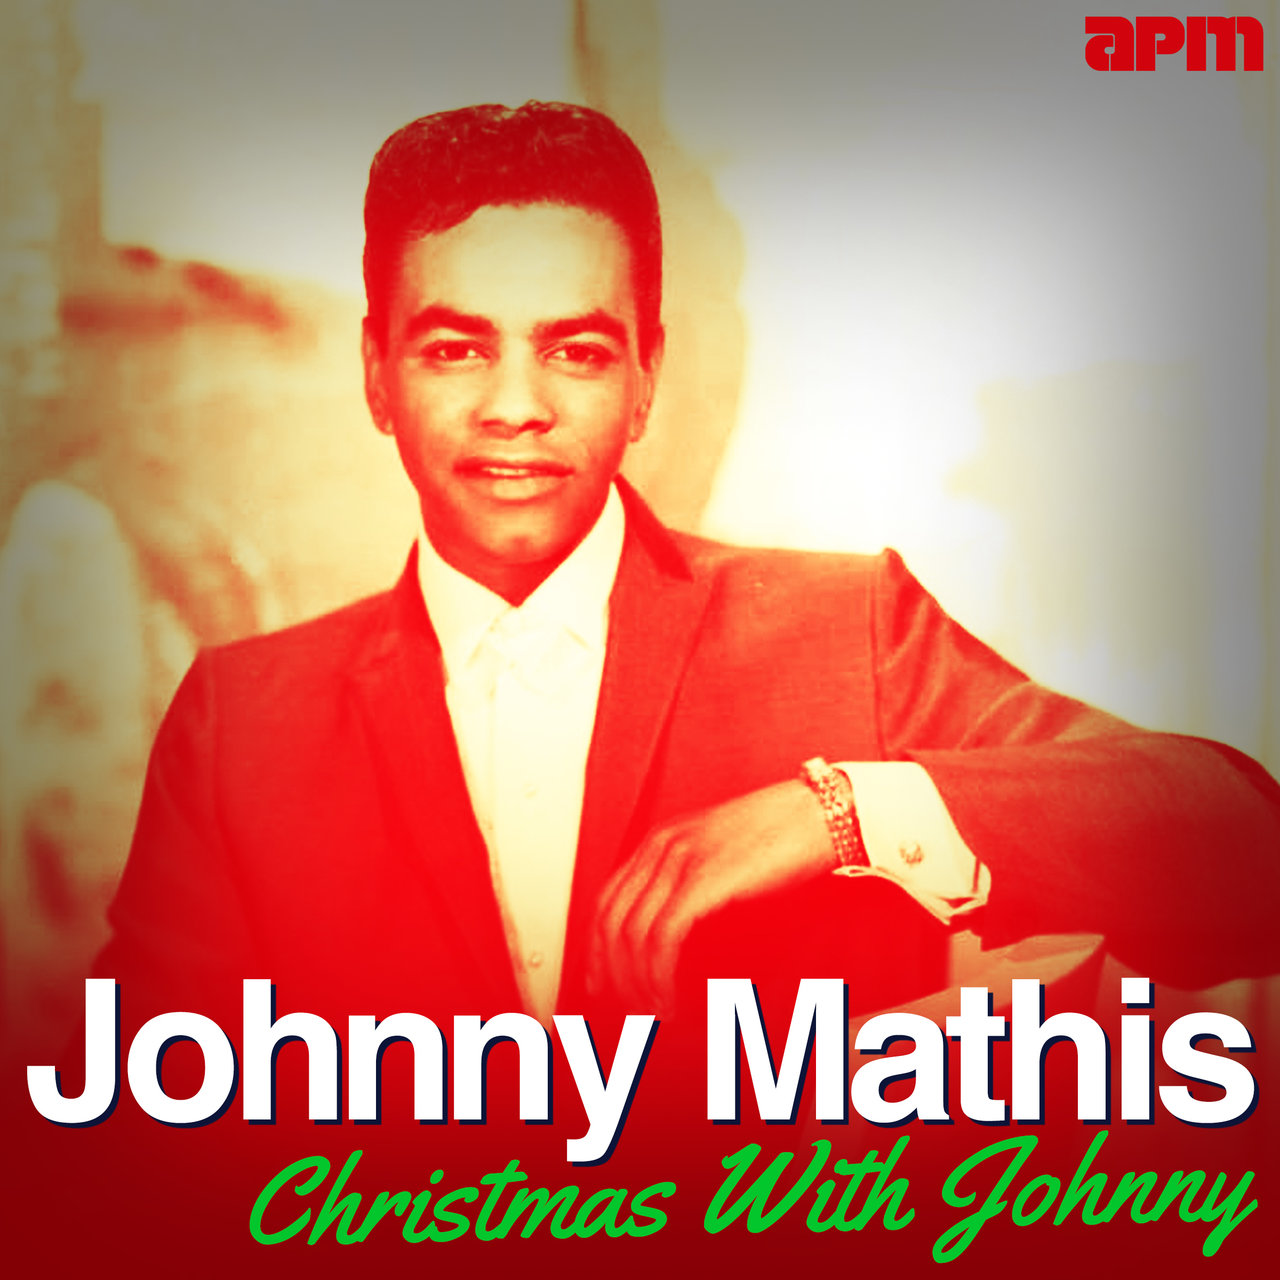 TIDAL: Listen to Christmas With Johnny Mathis on TIDAL